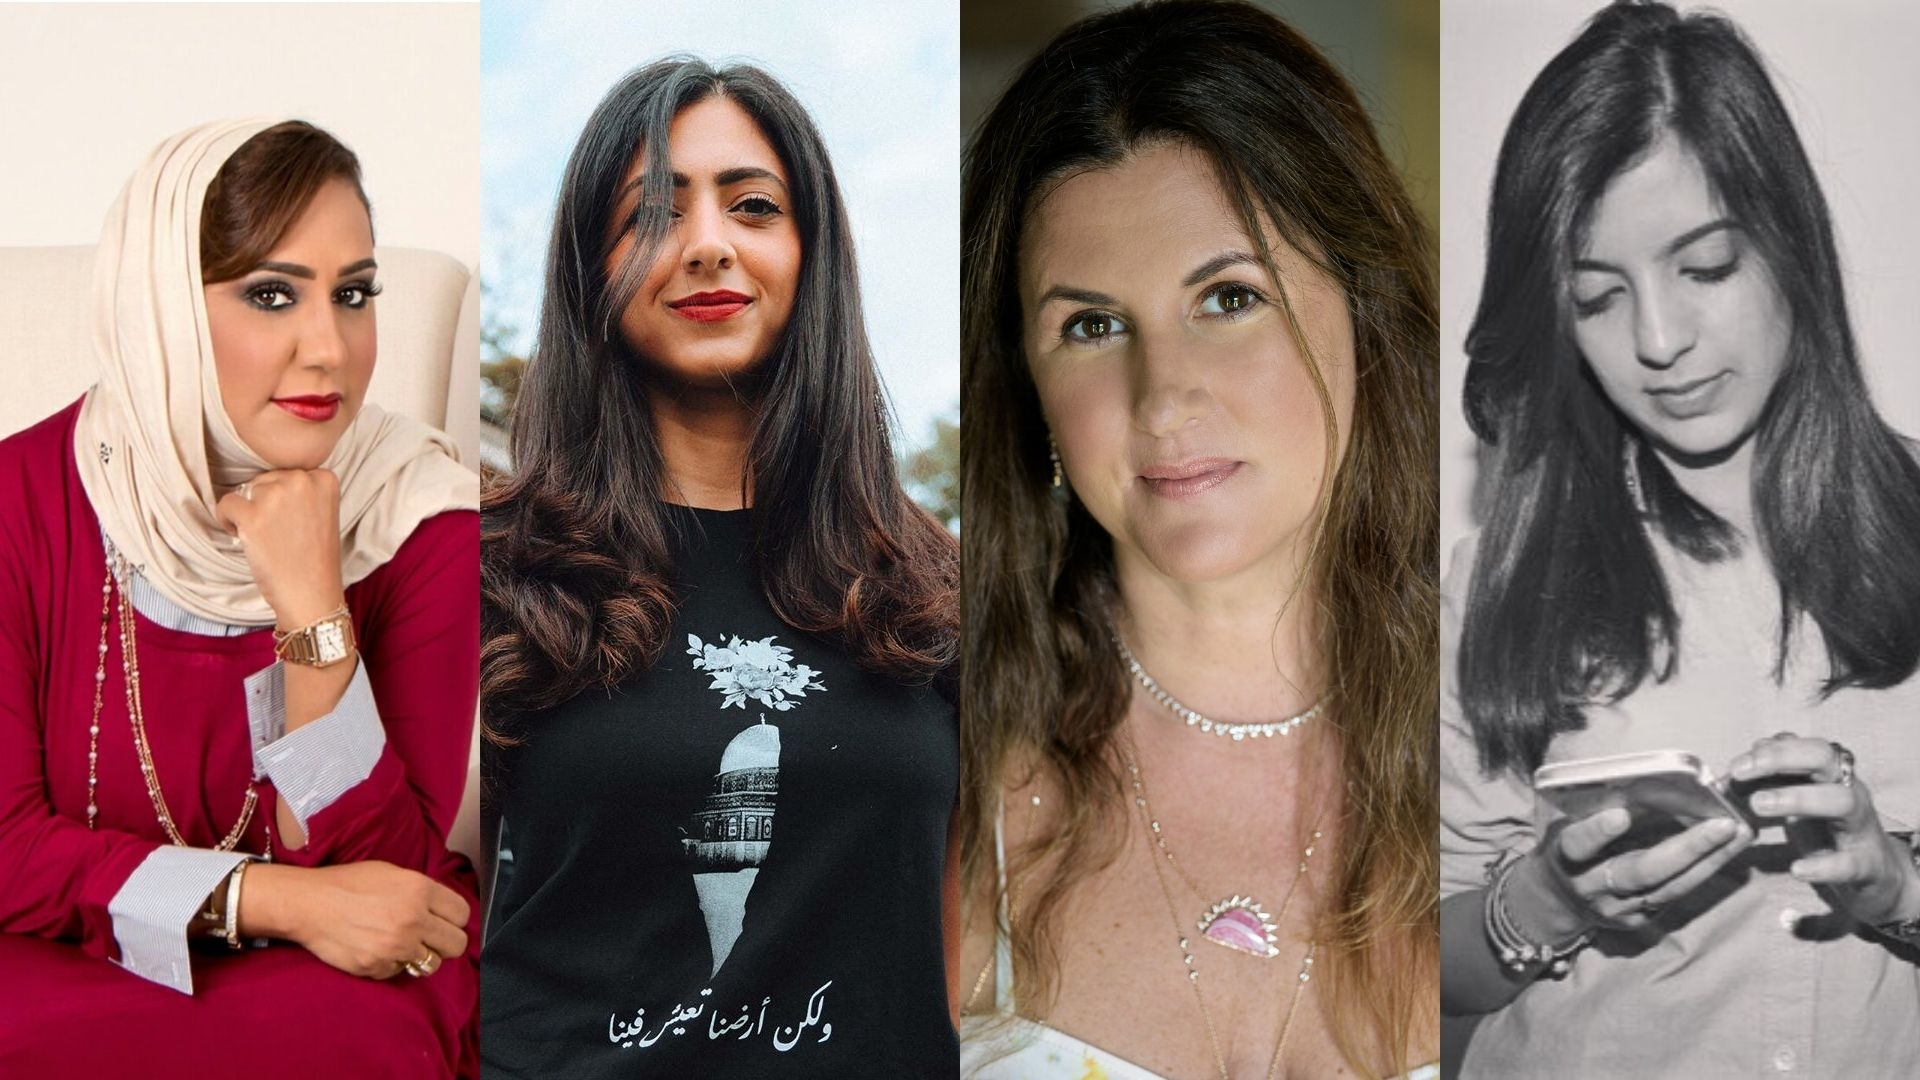 4 Women Write Letters To Their Younger Selves About Mental Health